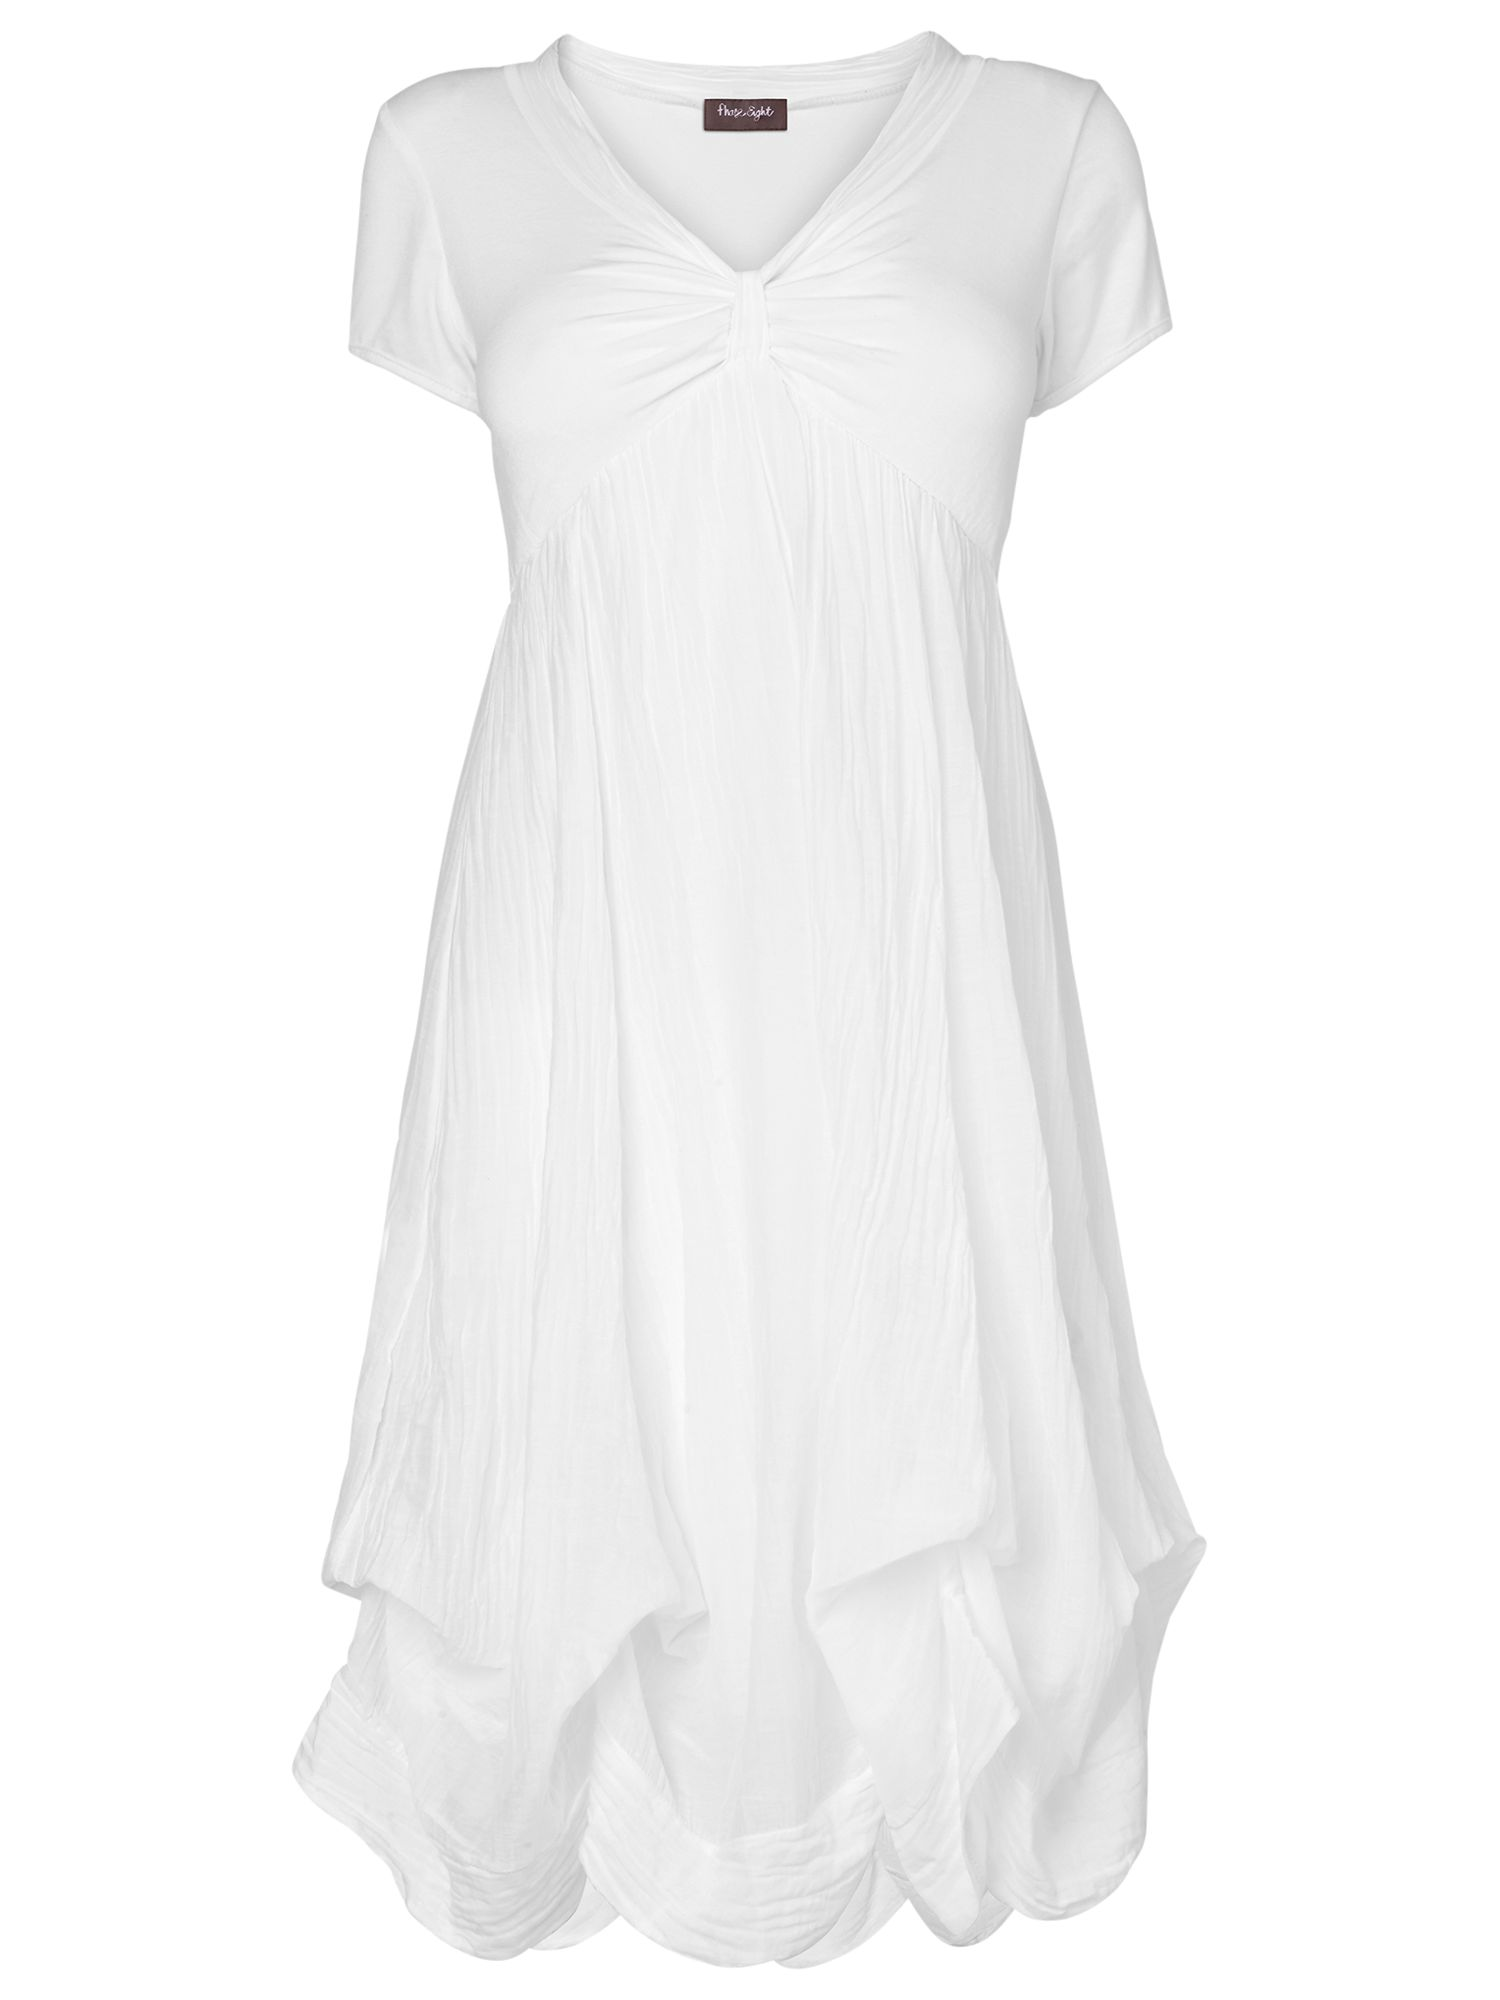 phase eight ruthie short sleeve hook-up dress white, phase, eight, ruthie, short, sleeve, hook-up, dress, white, phase eight, m|xs, clearance, womenswear offers, womens dresses offers, women, womens holiday shop, dresses, white dresses, womens dresses, special offers, fashion magazine, brands l-z, inactive womenswear, 1509464